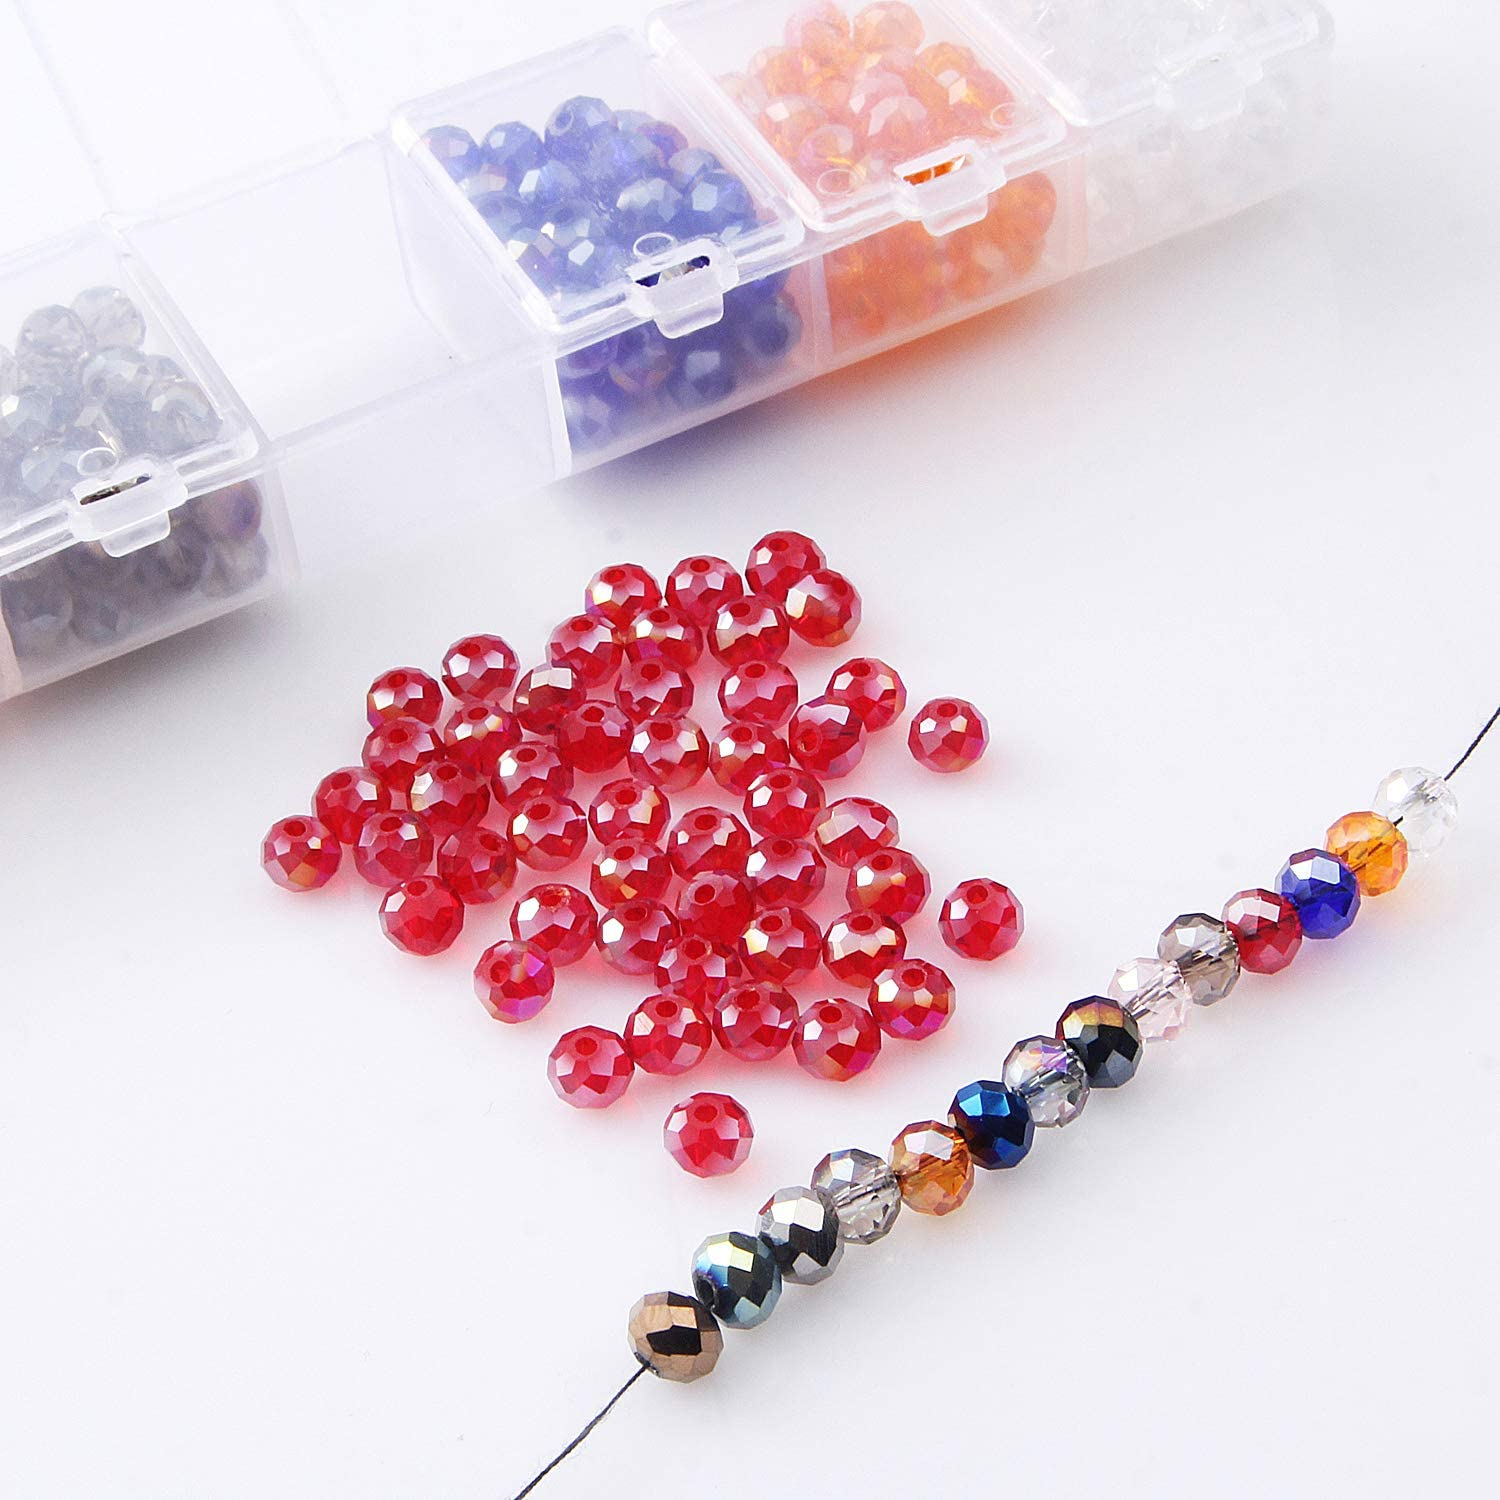 4x6mm 50pcs Rondelle Austria faceted Crystal Glass Beads Loose Spacer Bead NO.13